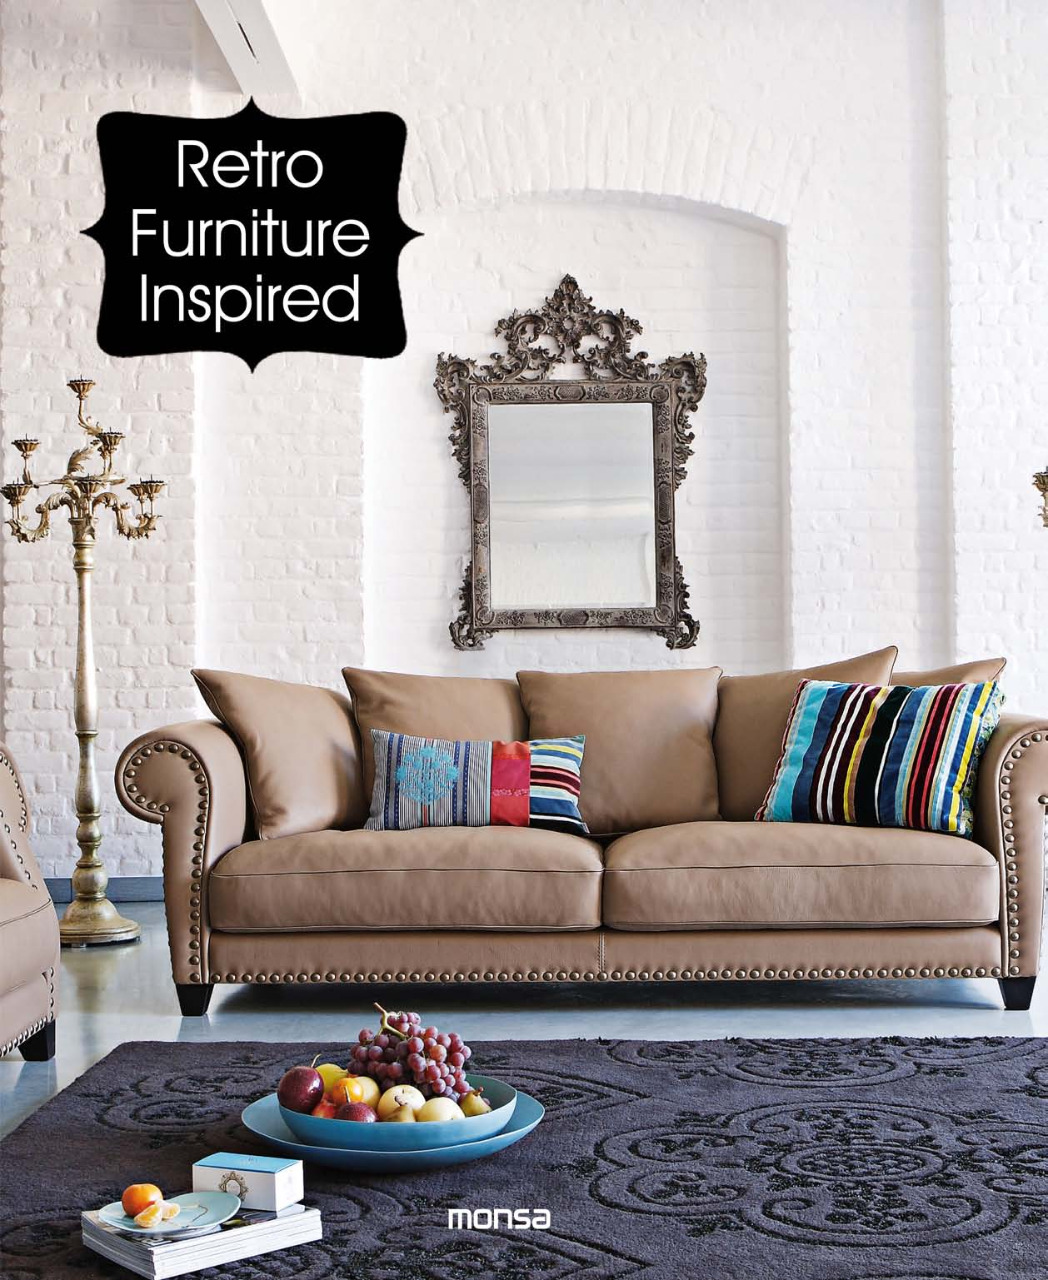 Retro Furniture Inspired Isbn 9788415829355 Available From Nationwide Book Distributors Ltd Nz